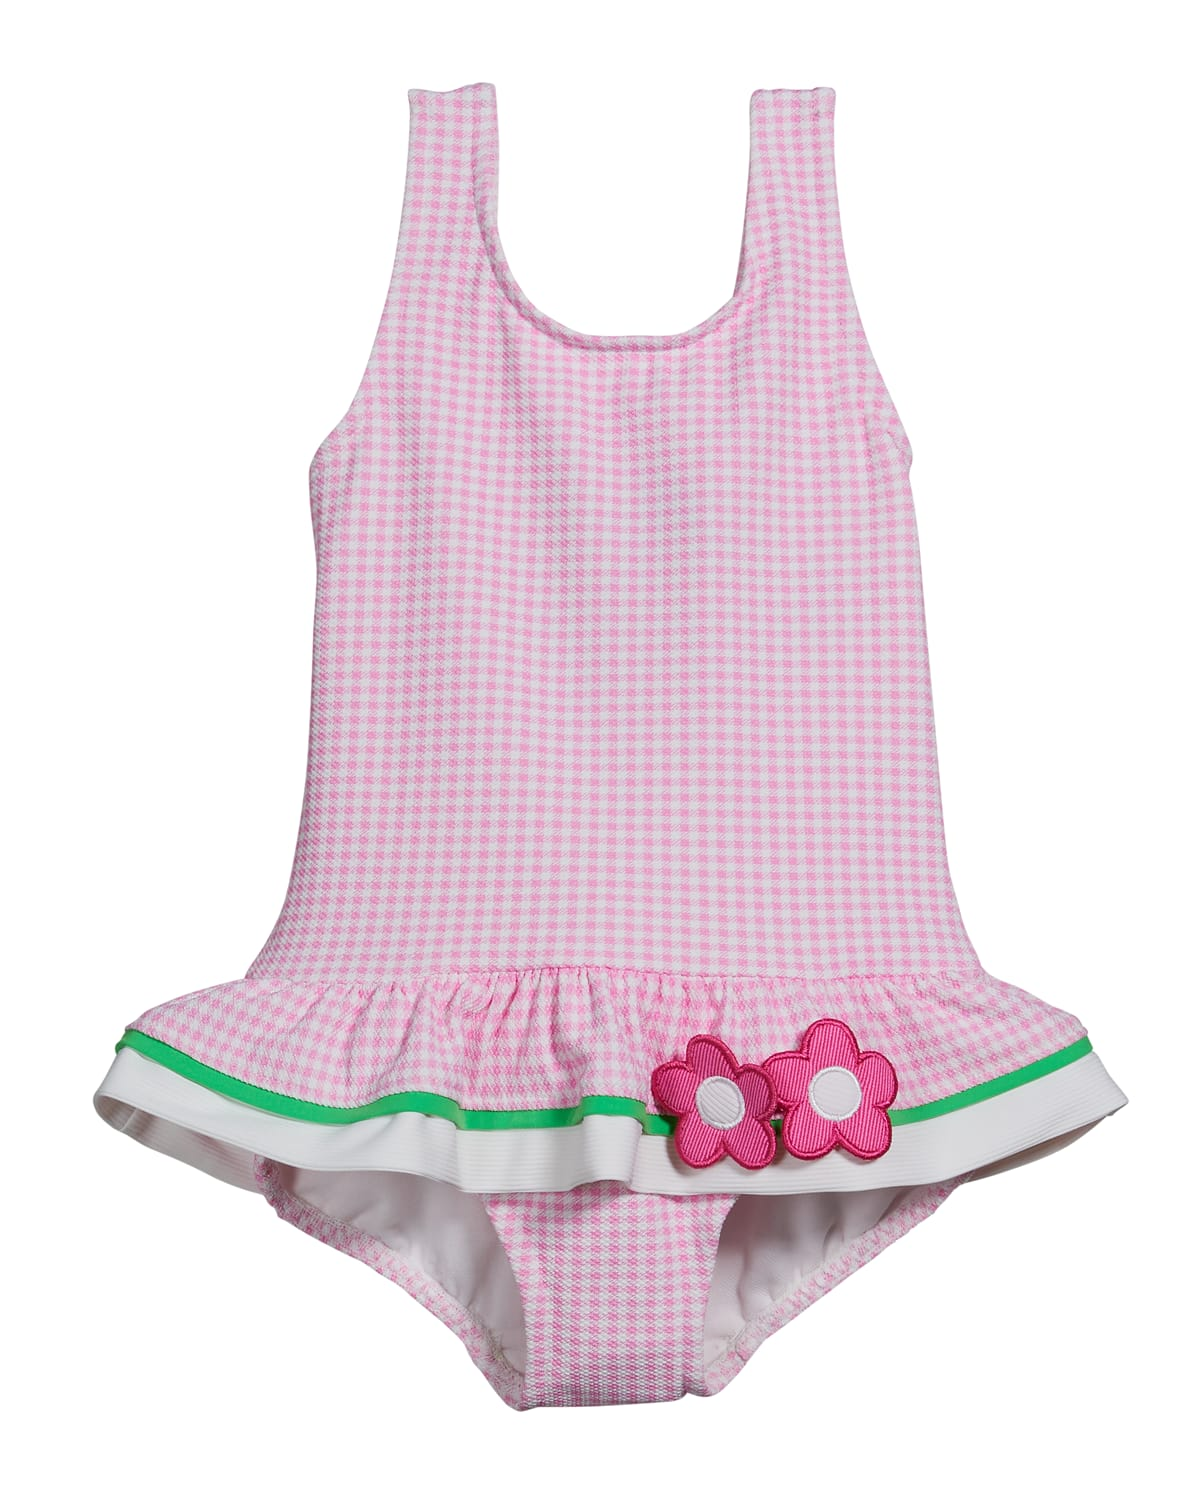 Girl's Gingham Floral One-Piece Swimsuit